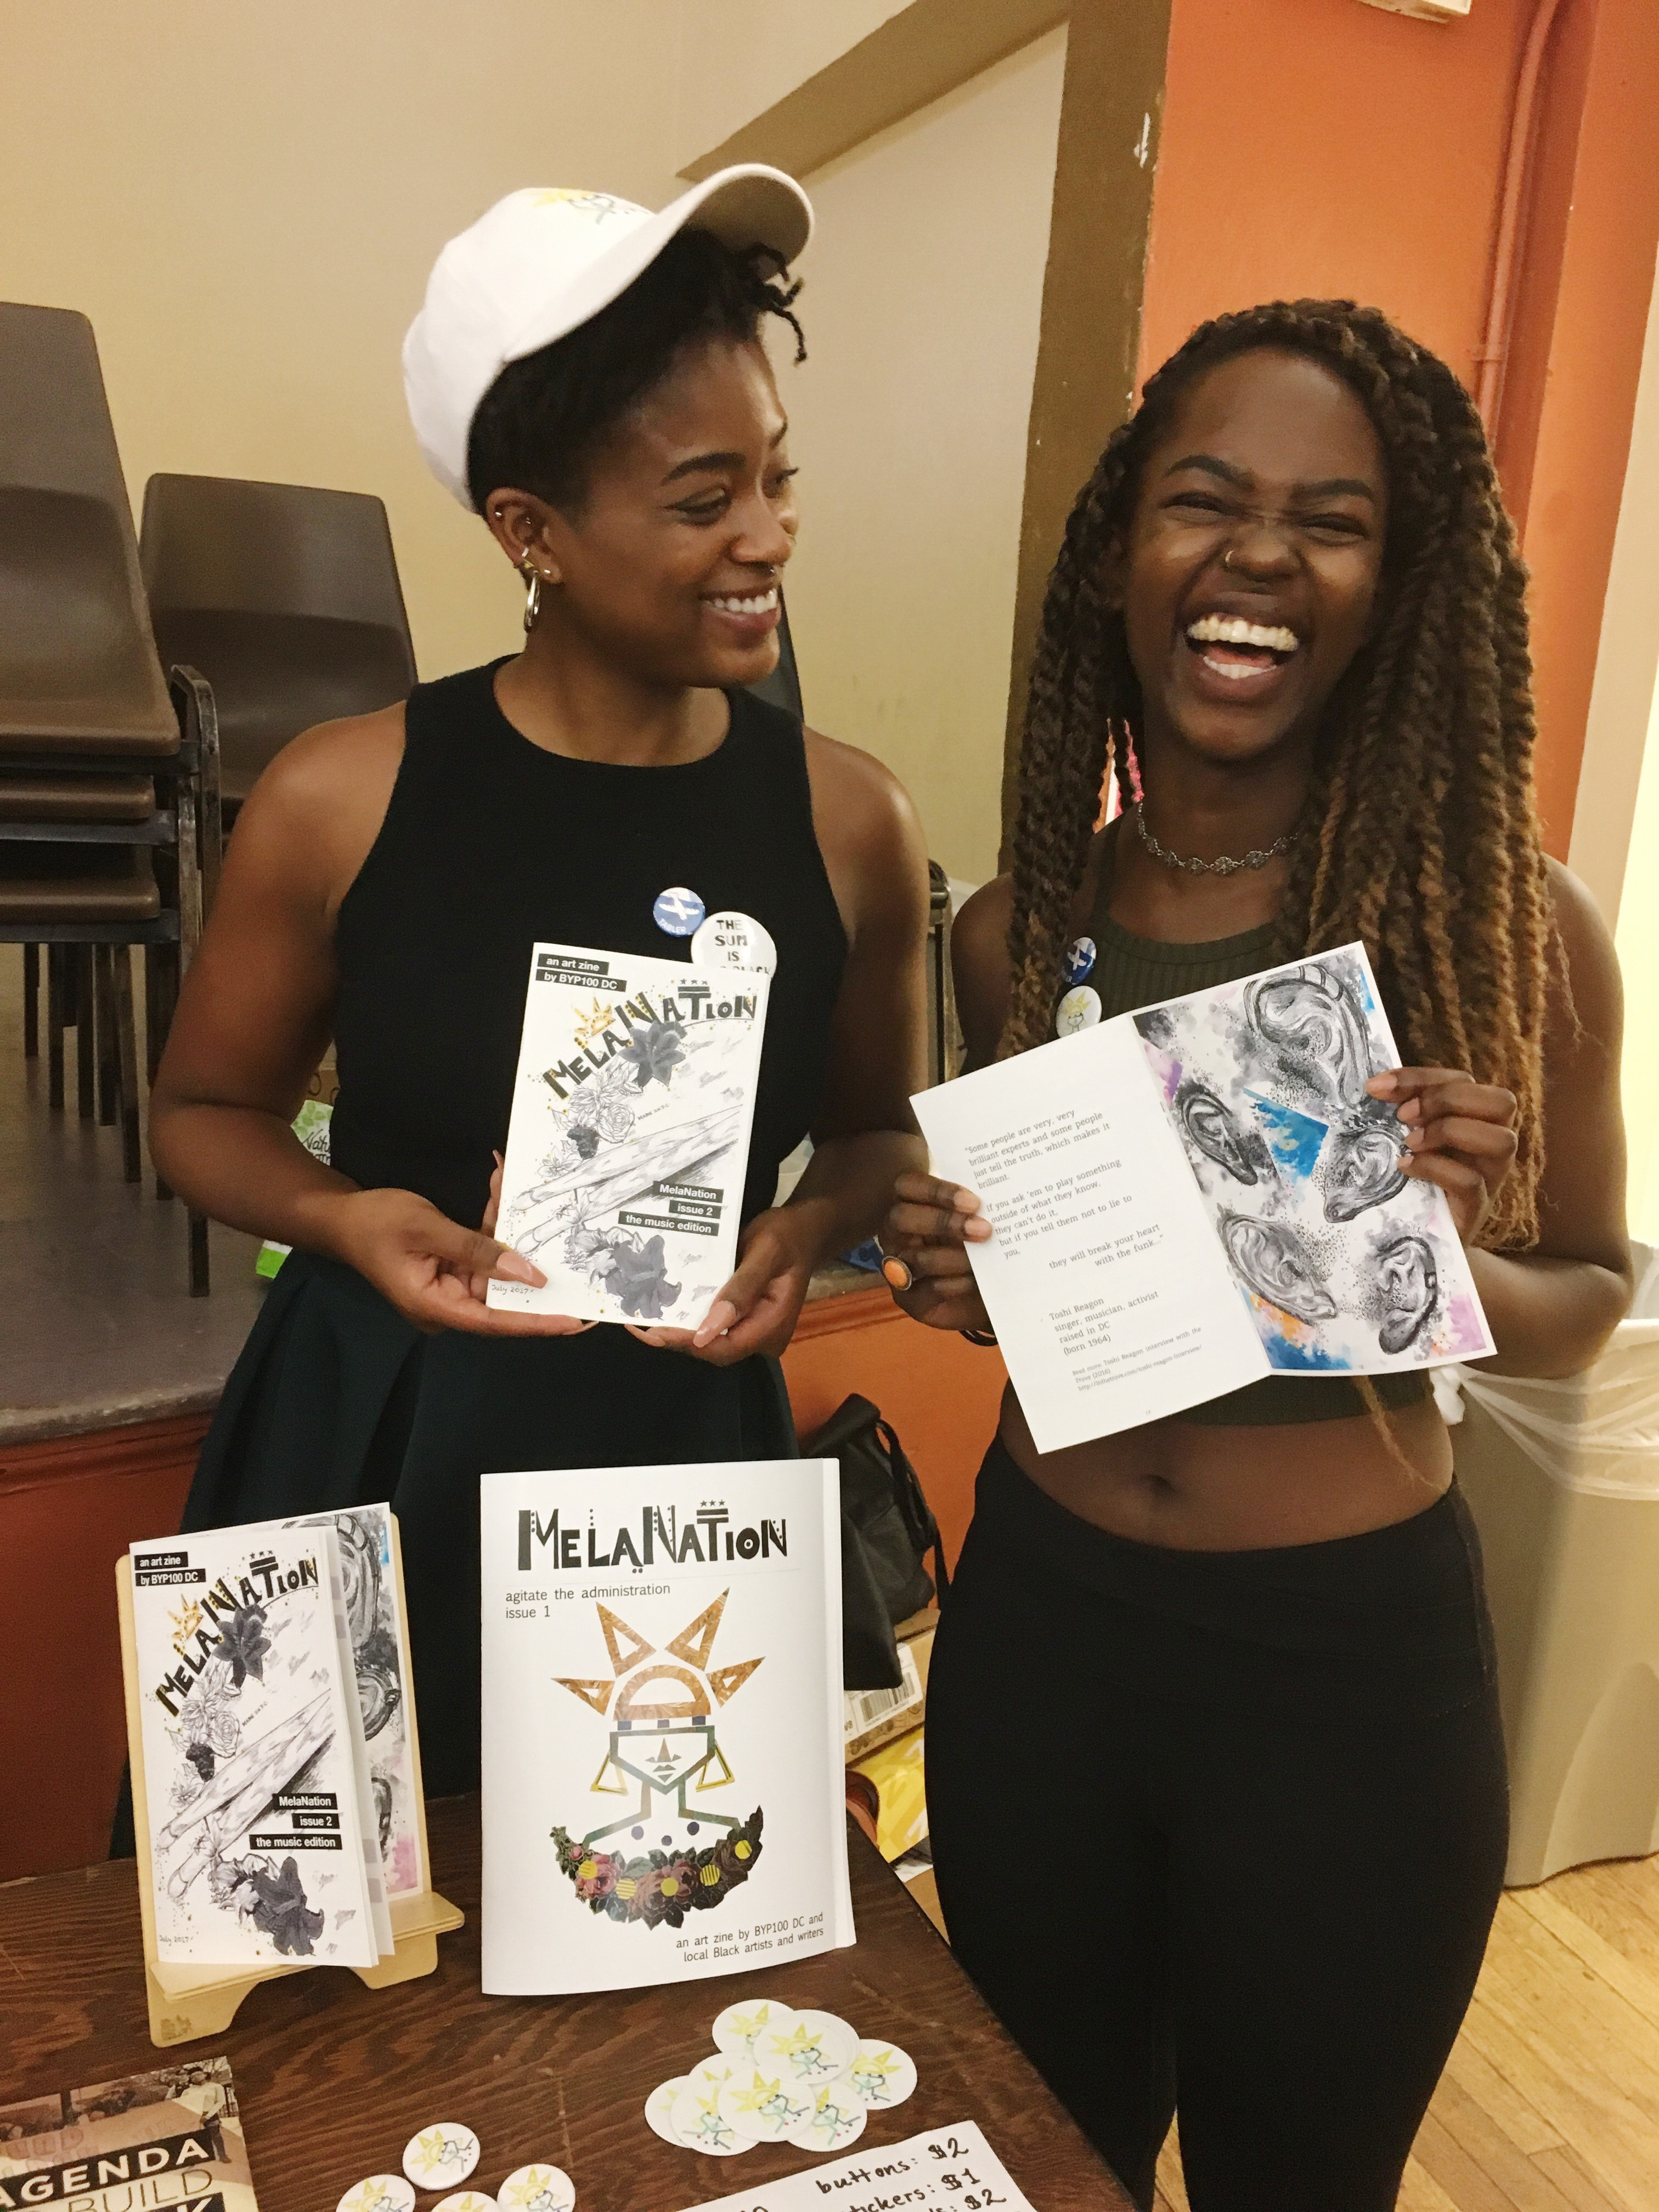 MelaNation at Zinefest 2017